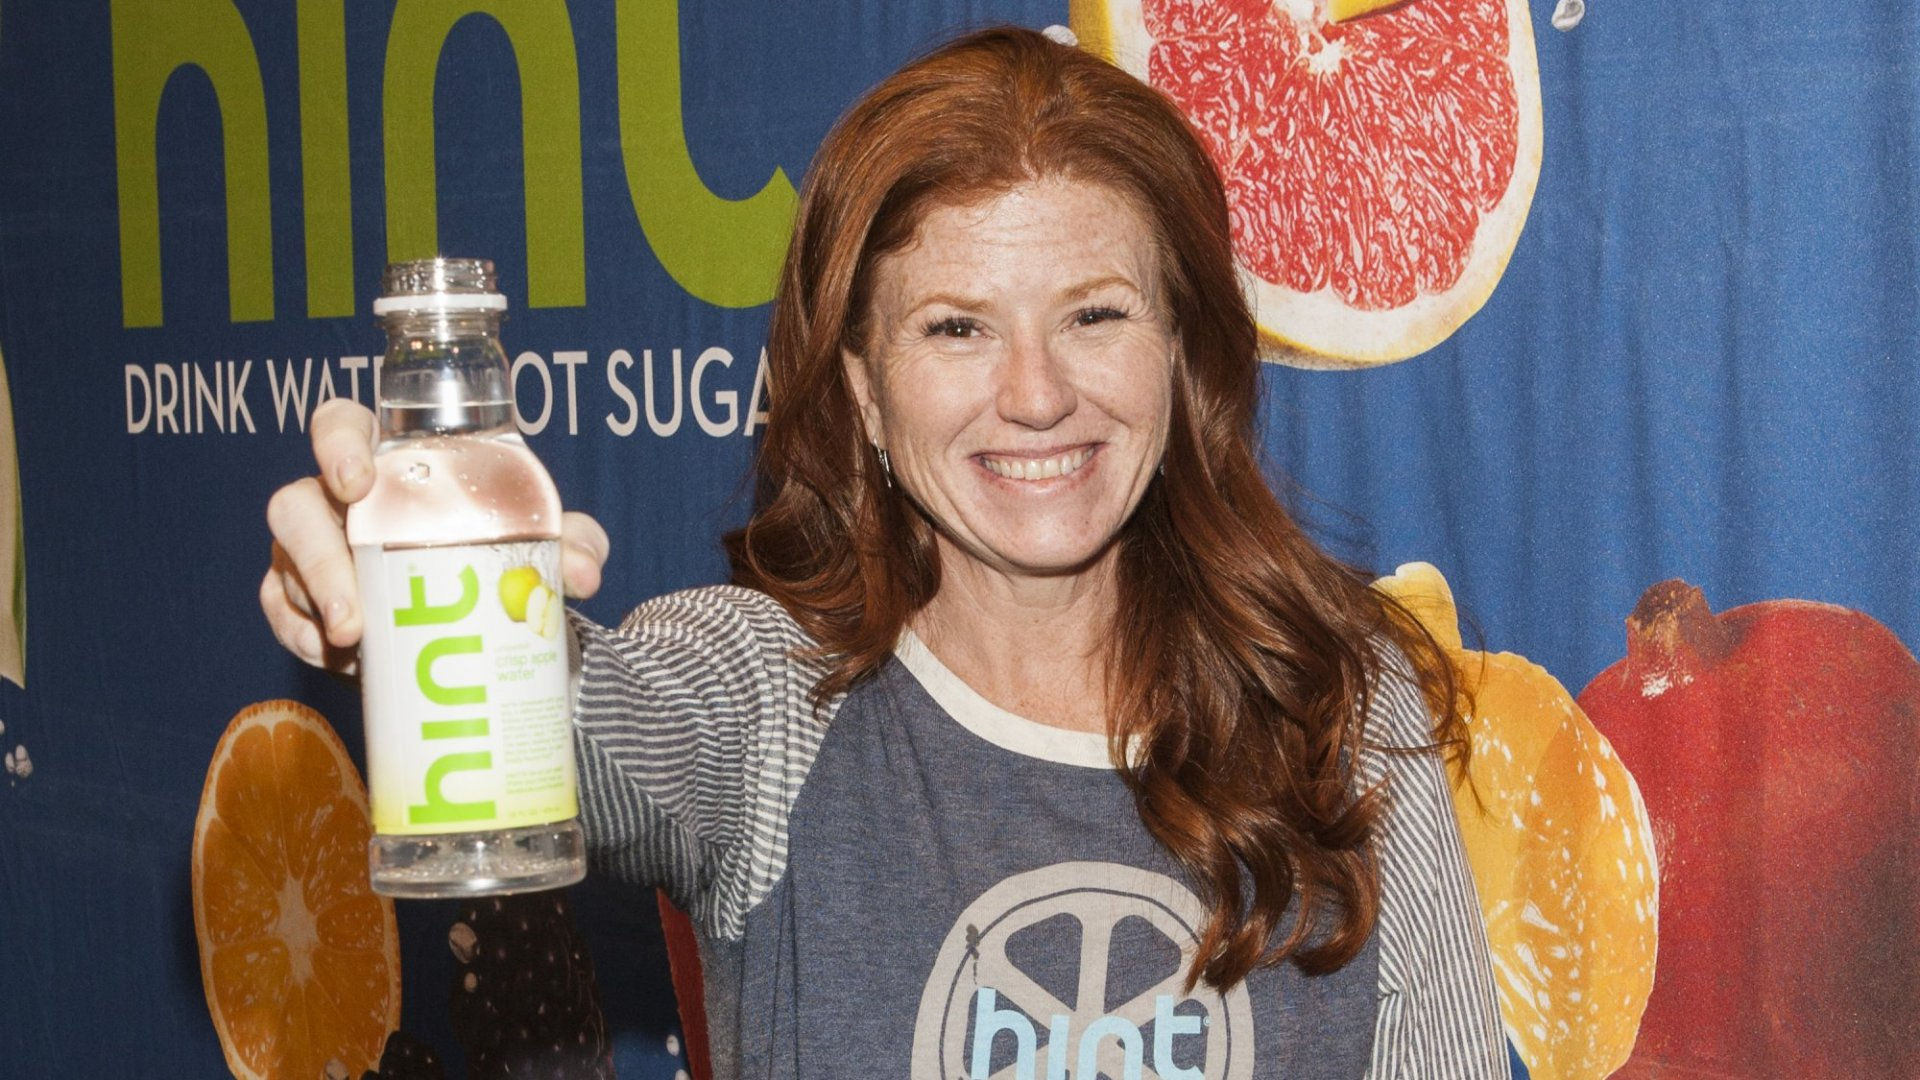 Hint Water CEO Quits NACIE in Response to Trump's Policies